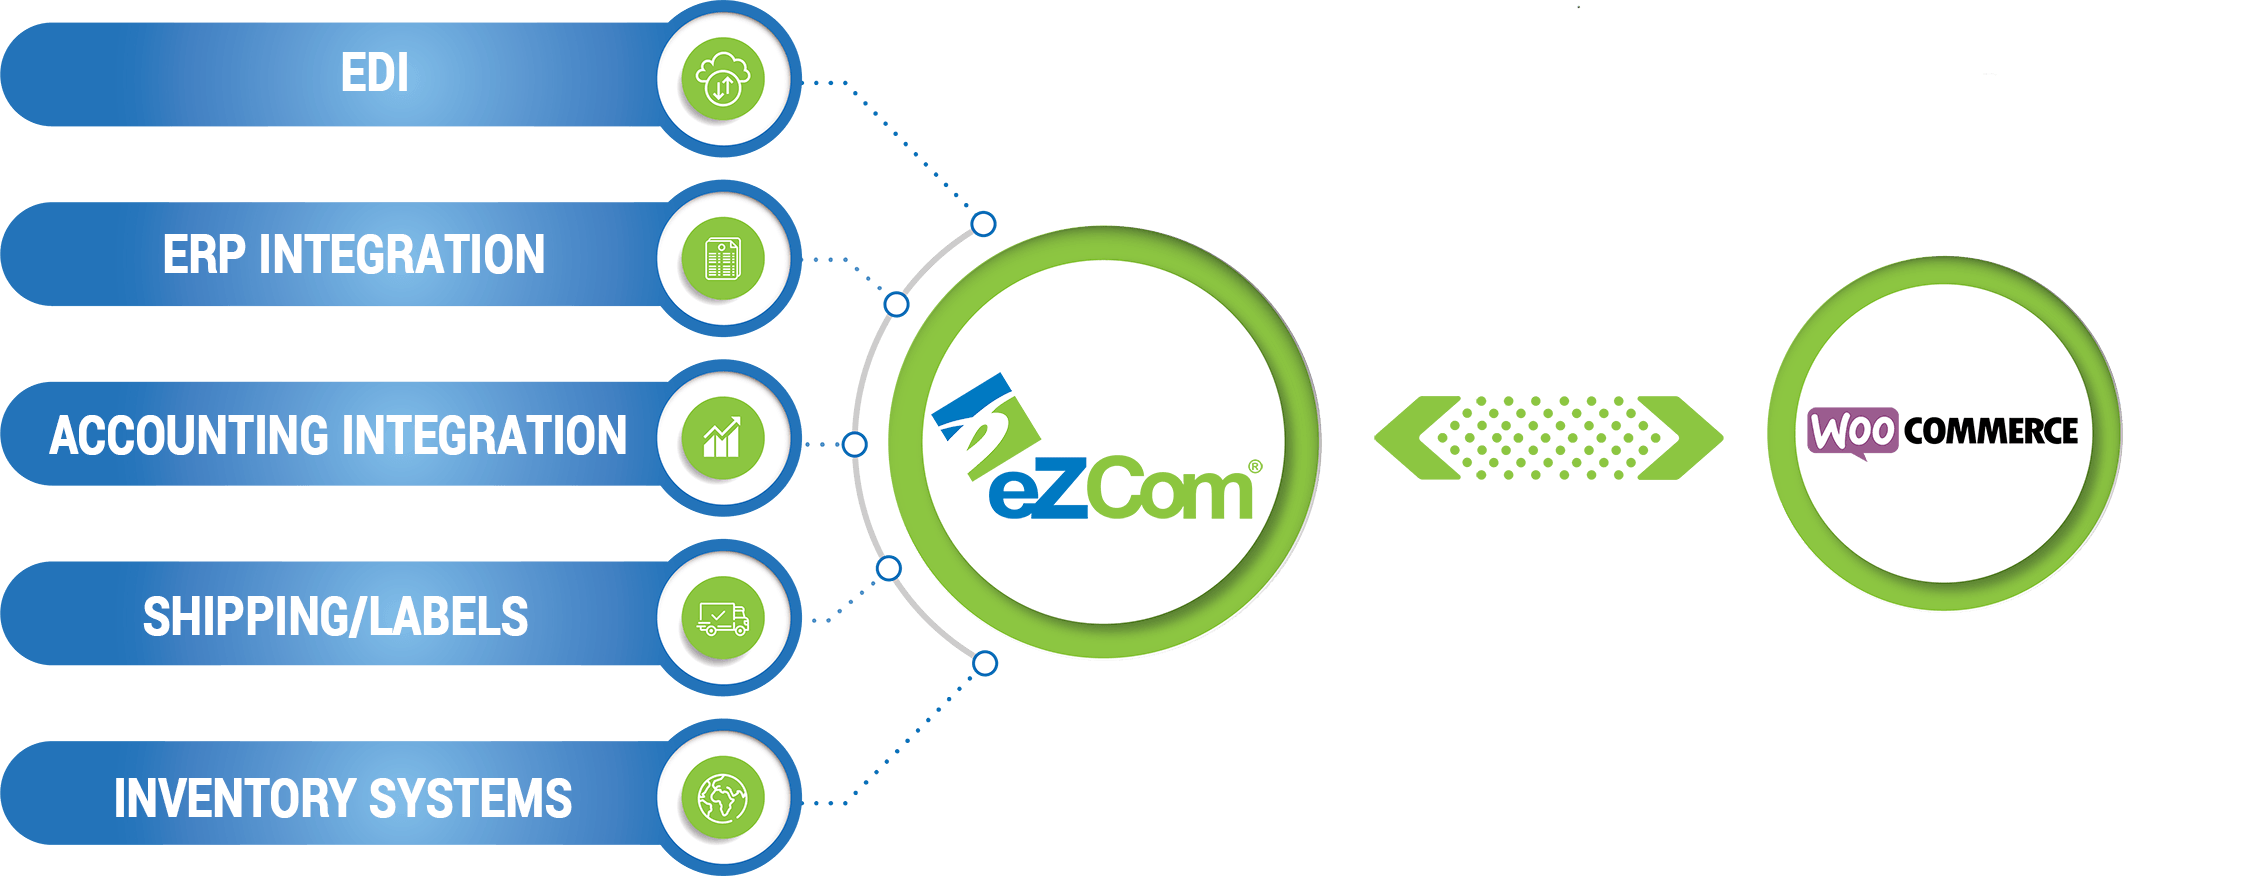 WooCommerce connector to eZCom